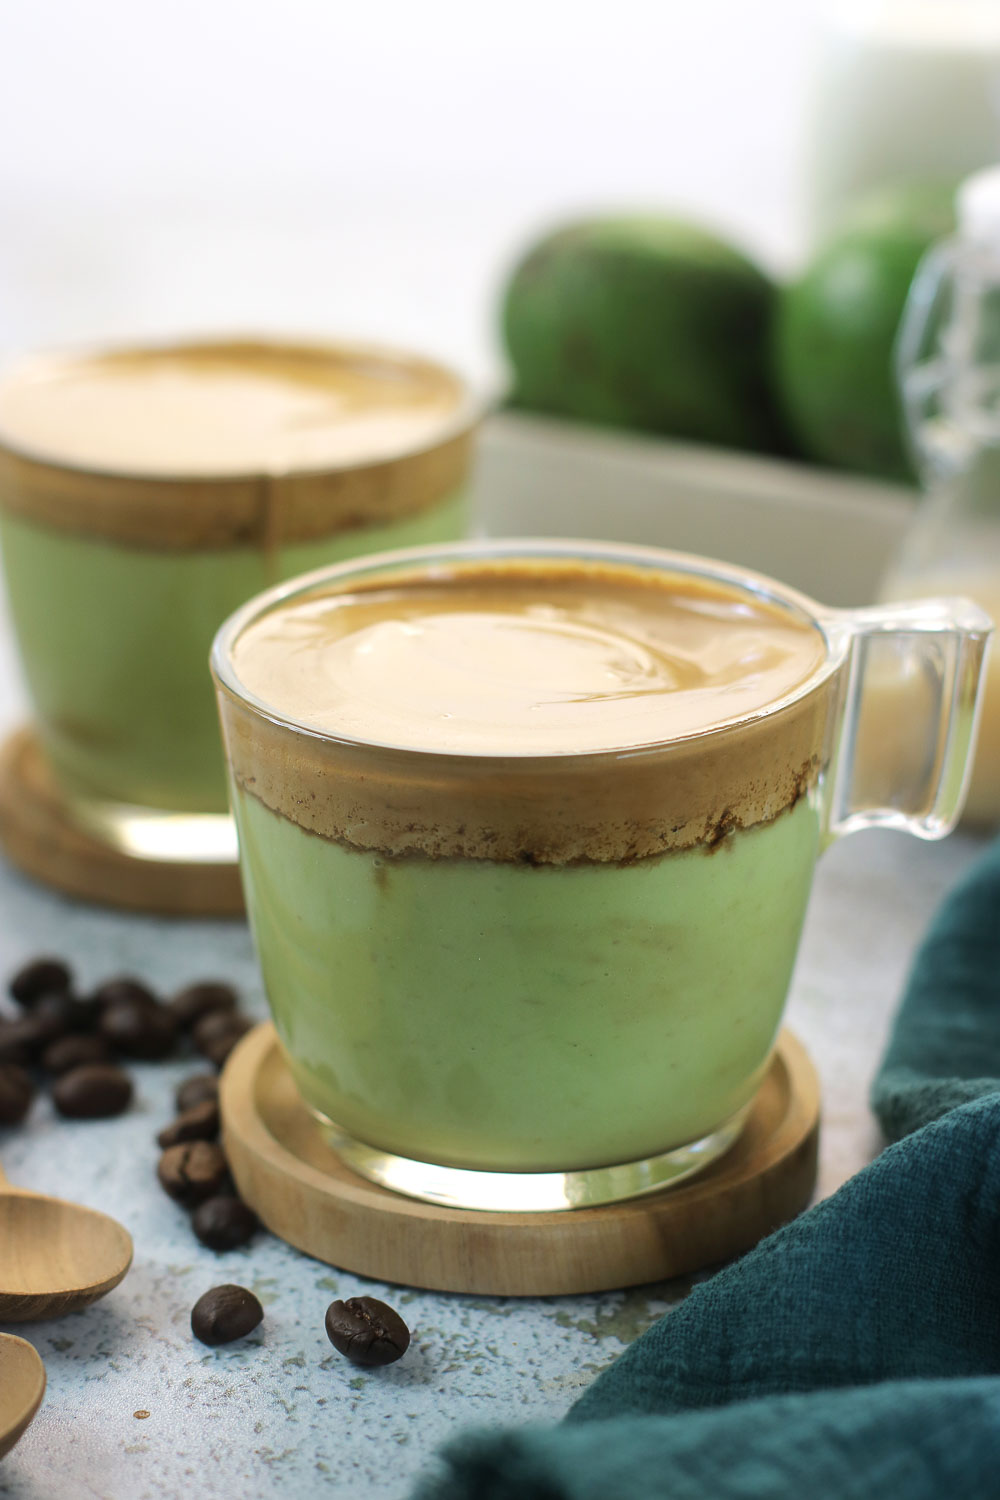 Creamy Avocado Dalgona Coffee is absolutely irresistible and a great way to make your morning coffee super special. The creamy fluffy sits on top of the avocado smoothie makes a great brunch drink. or an afternoon pick-me-up.